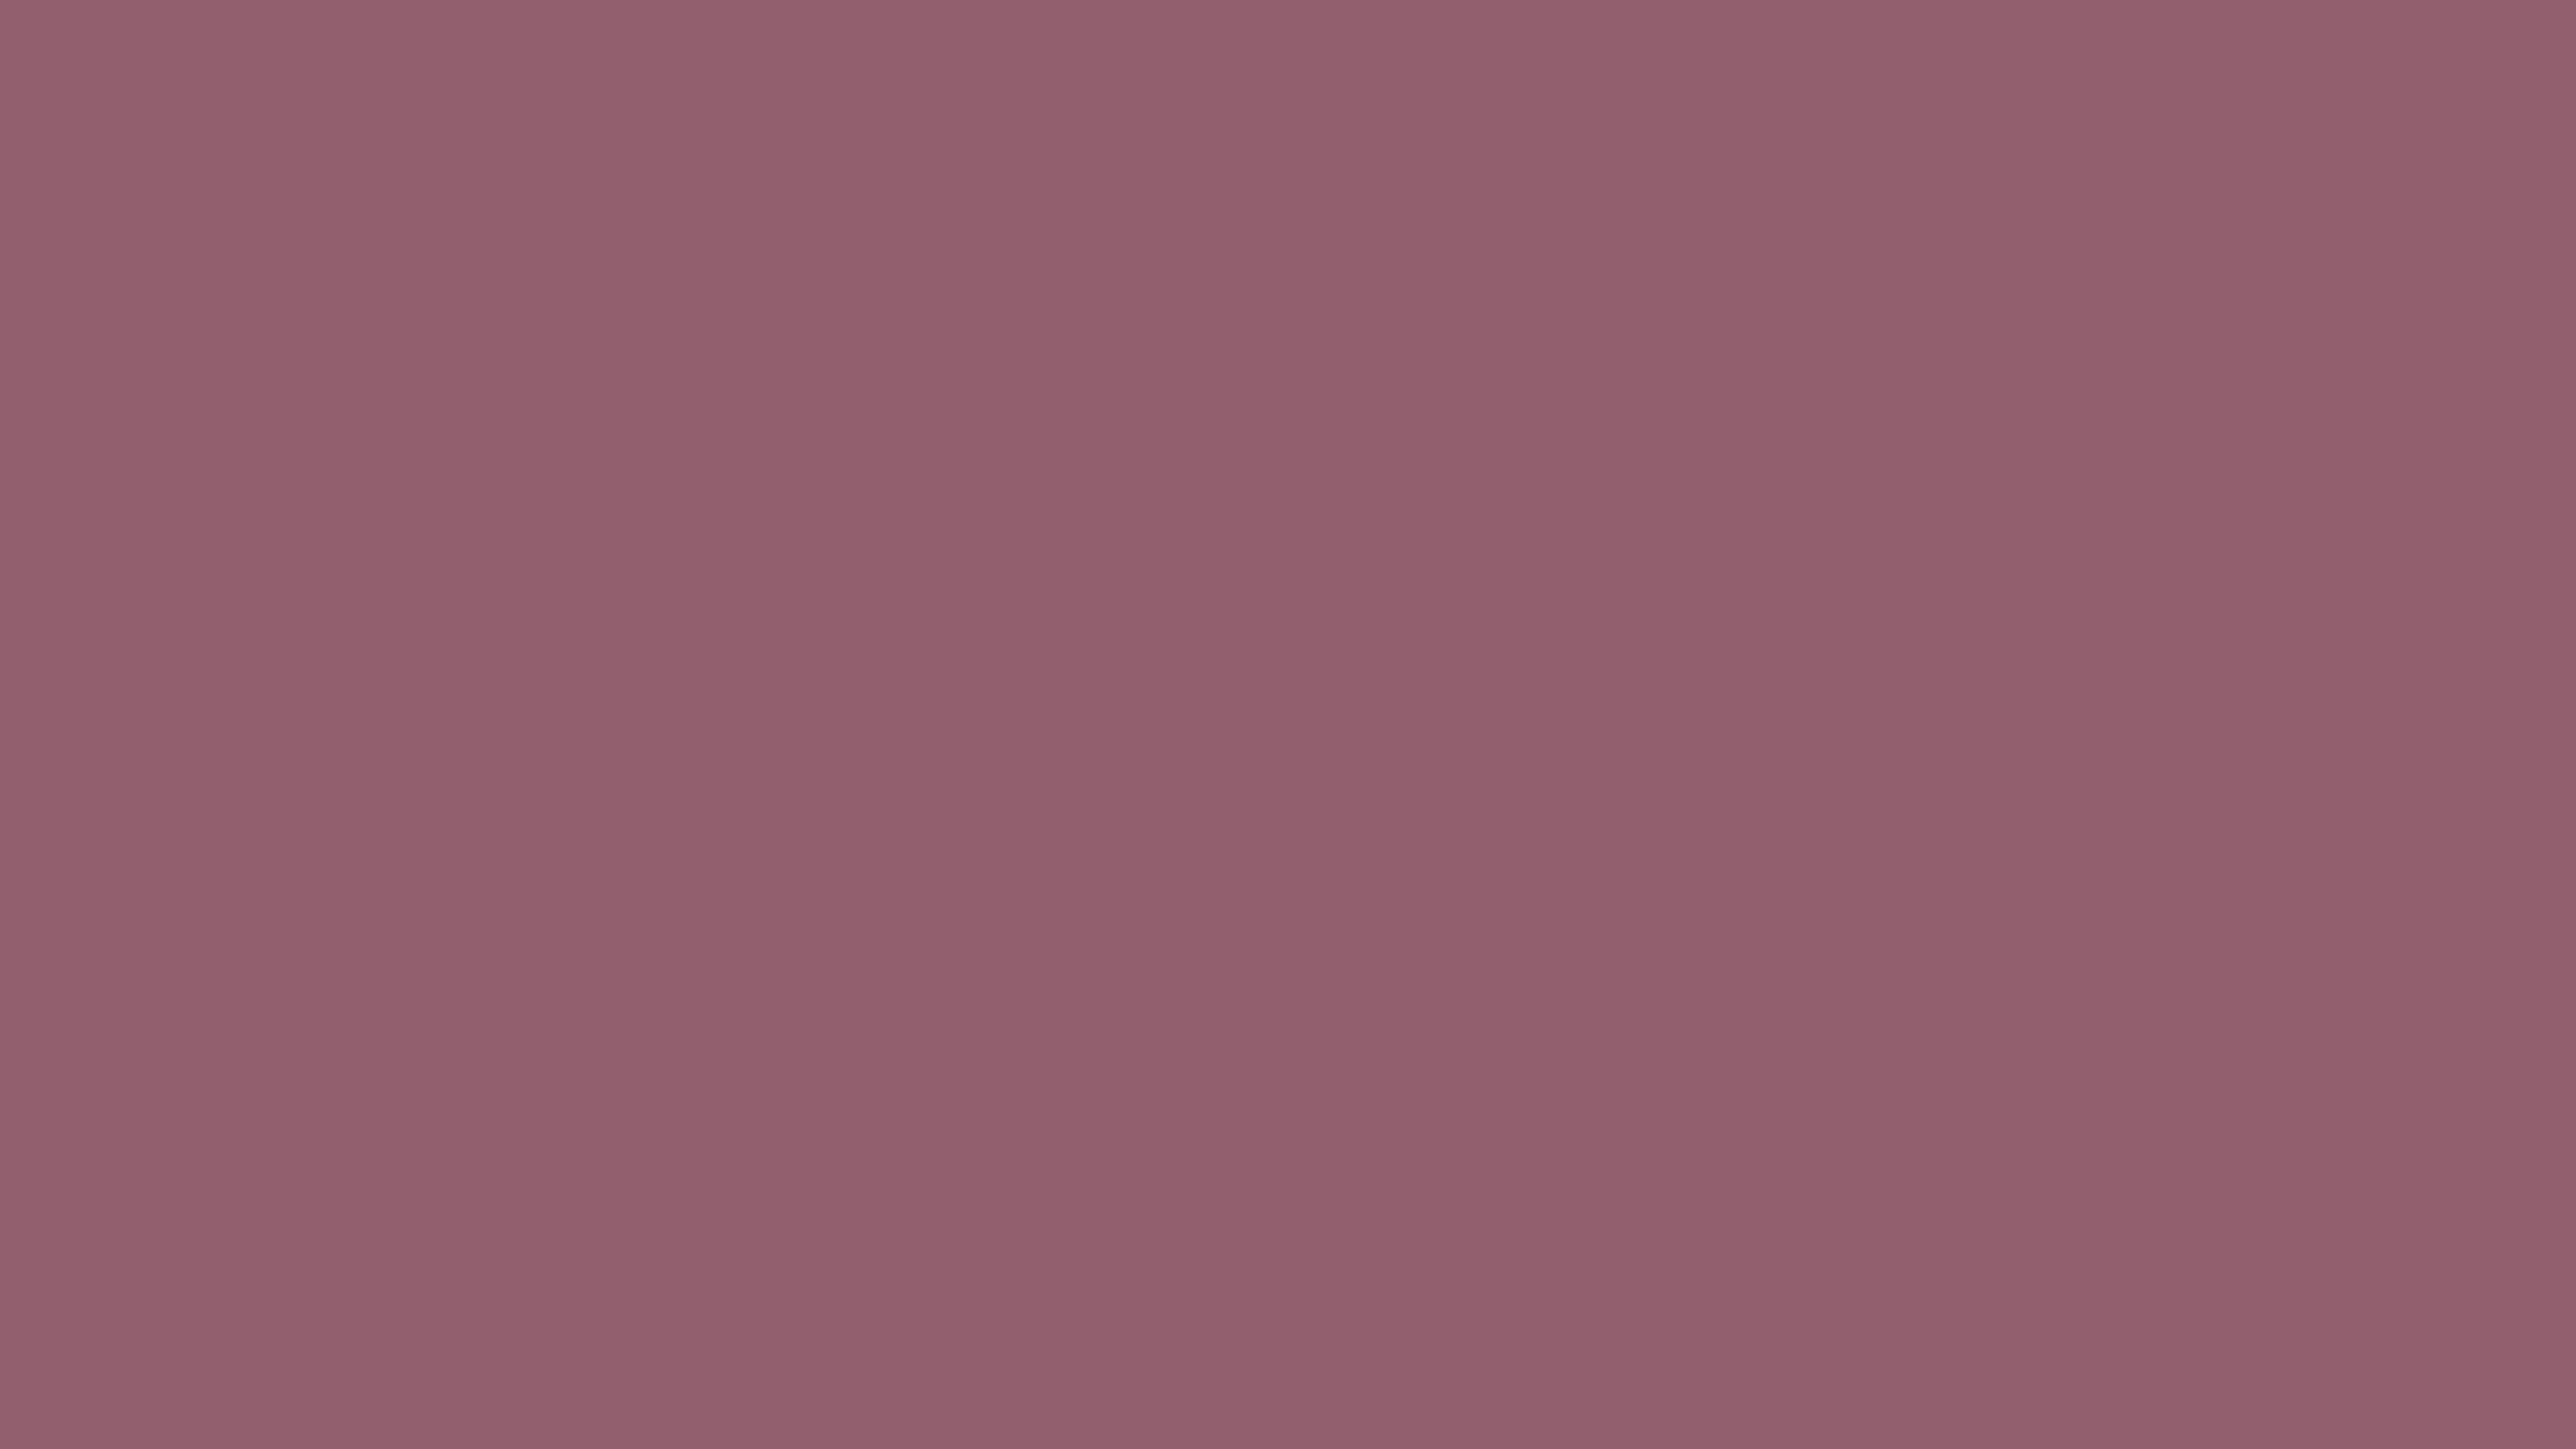 4096x2304 Raspberry Glace Solid Color Background